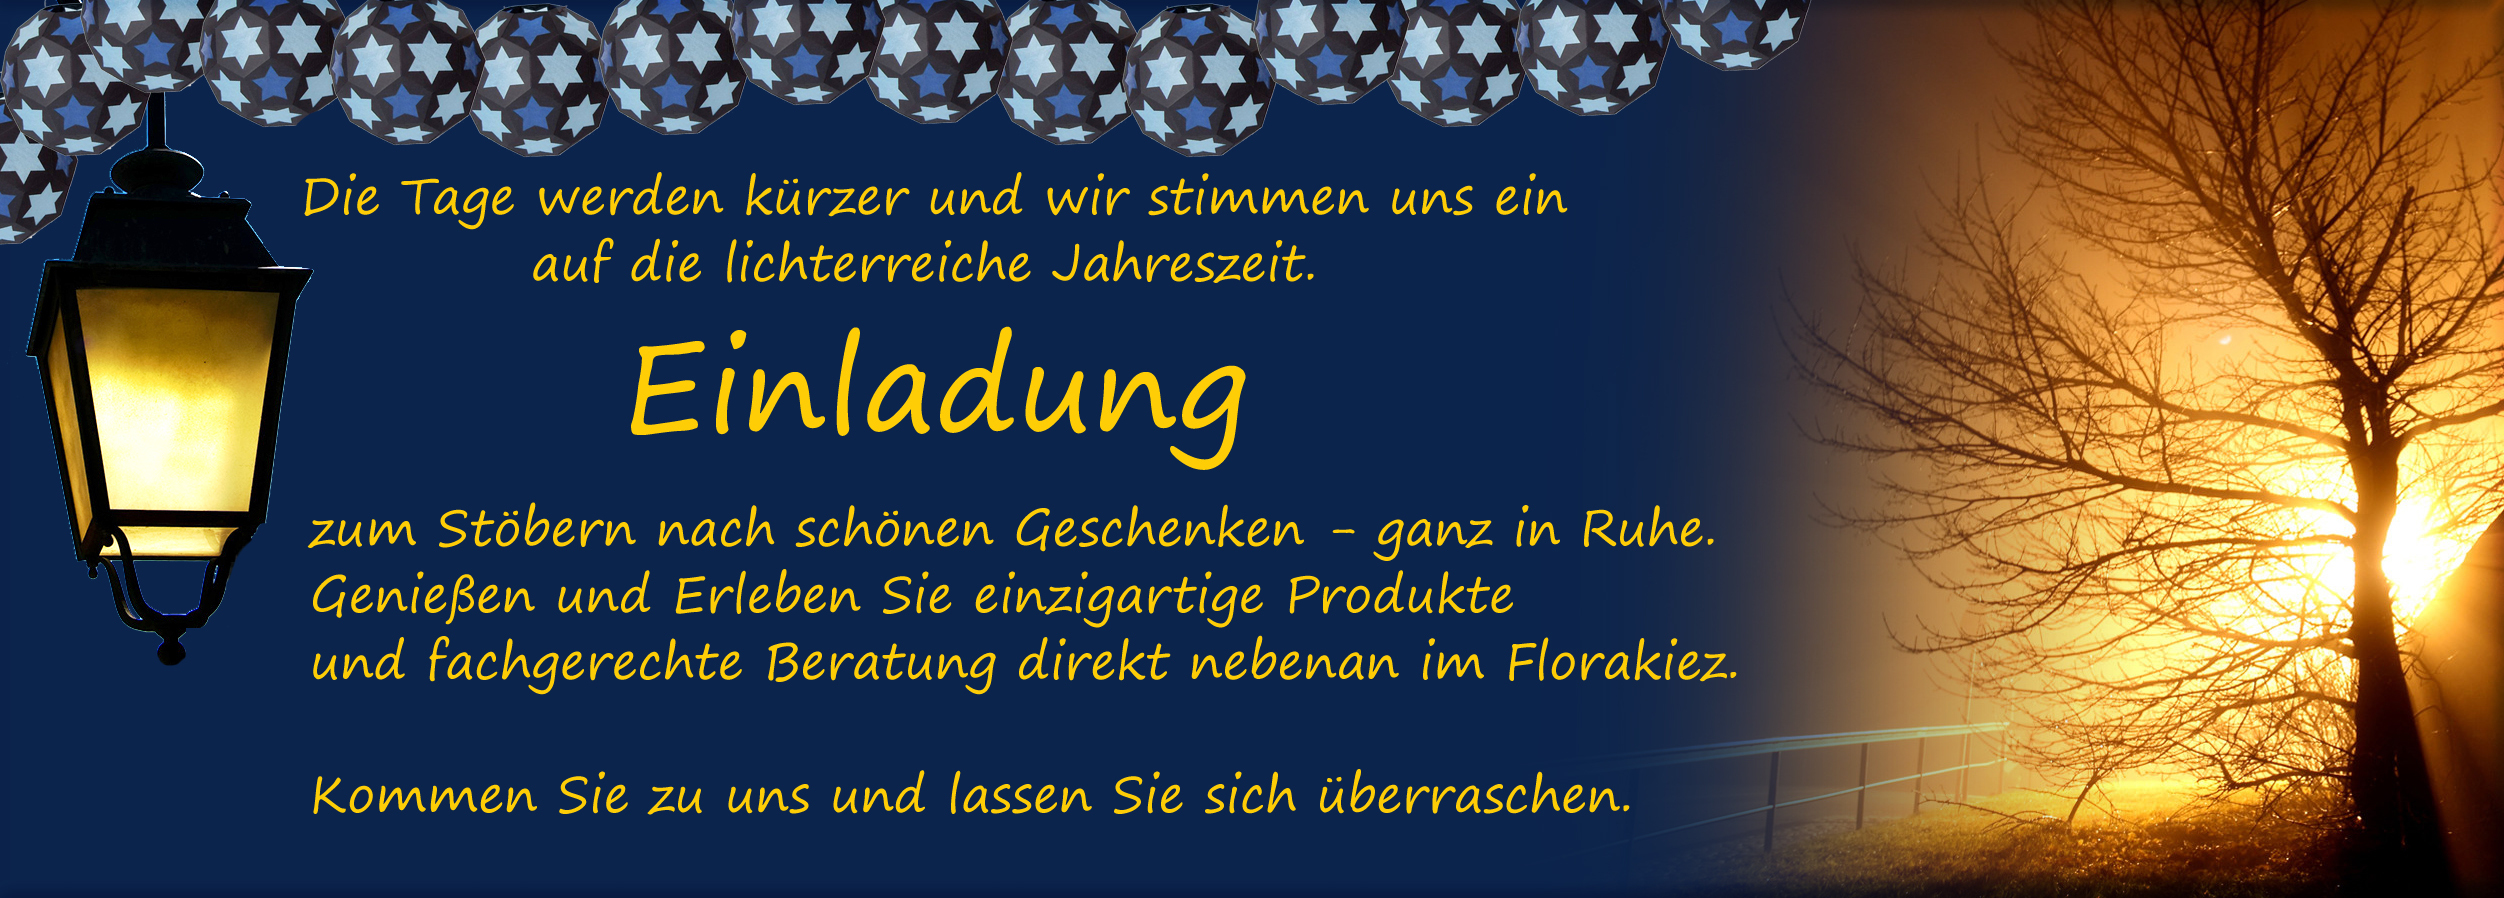 Flyer-Lichterfestoeffnung